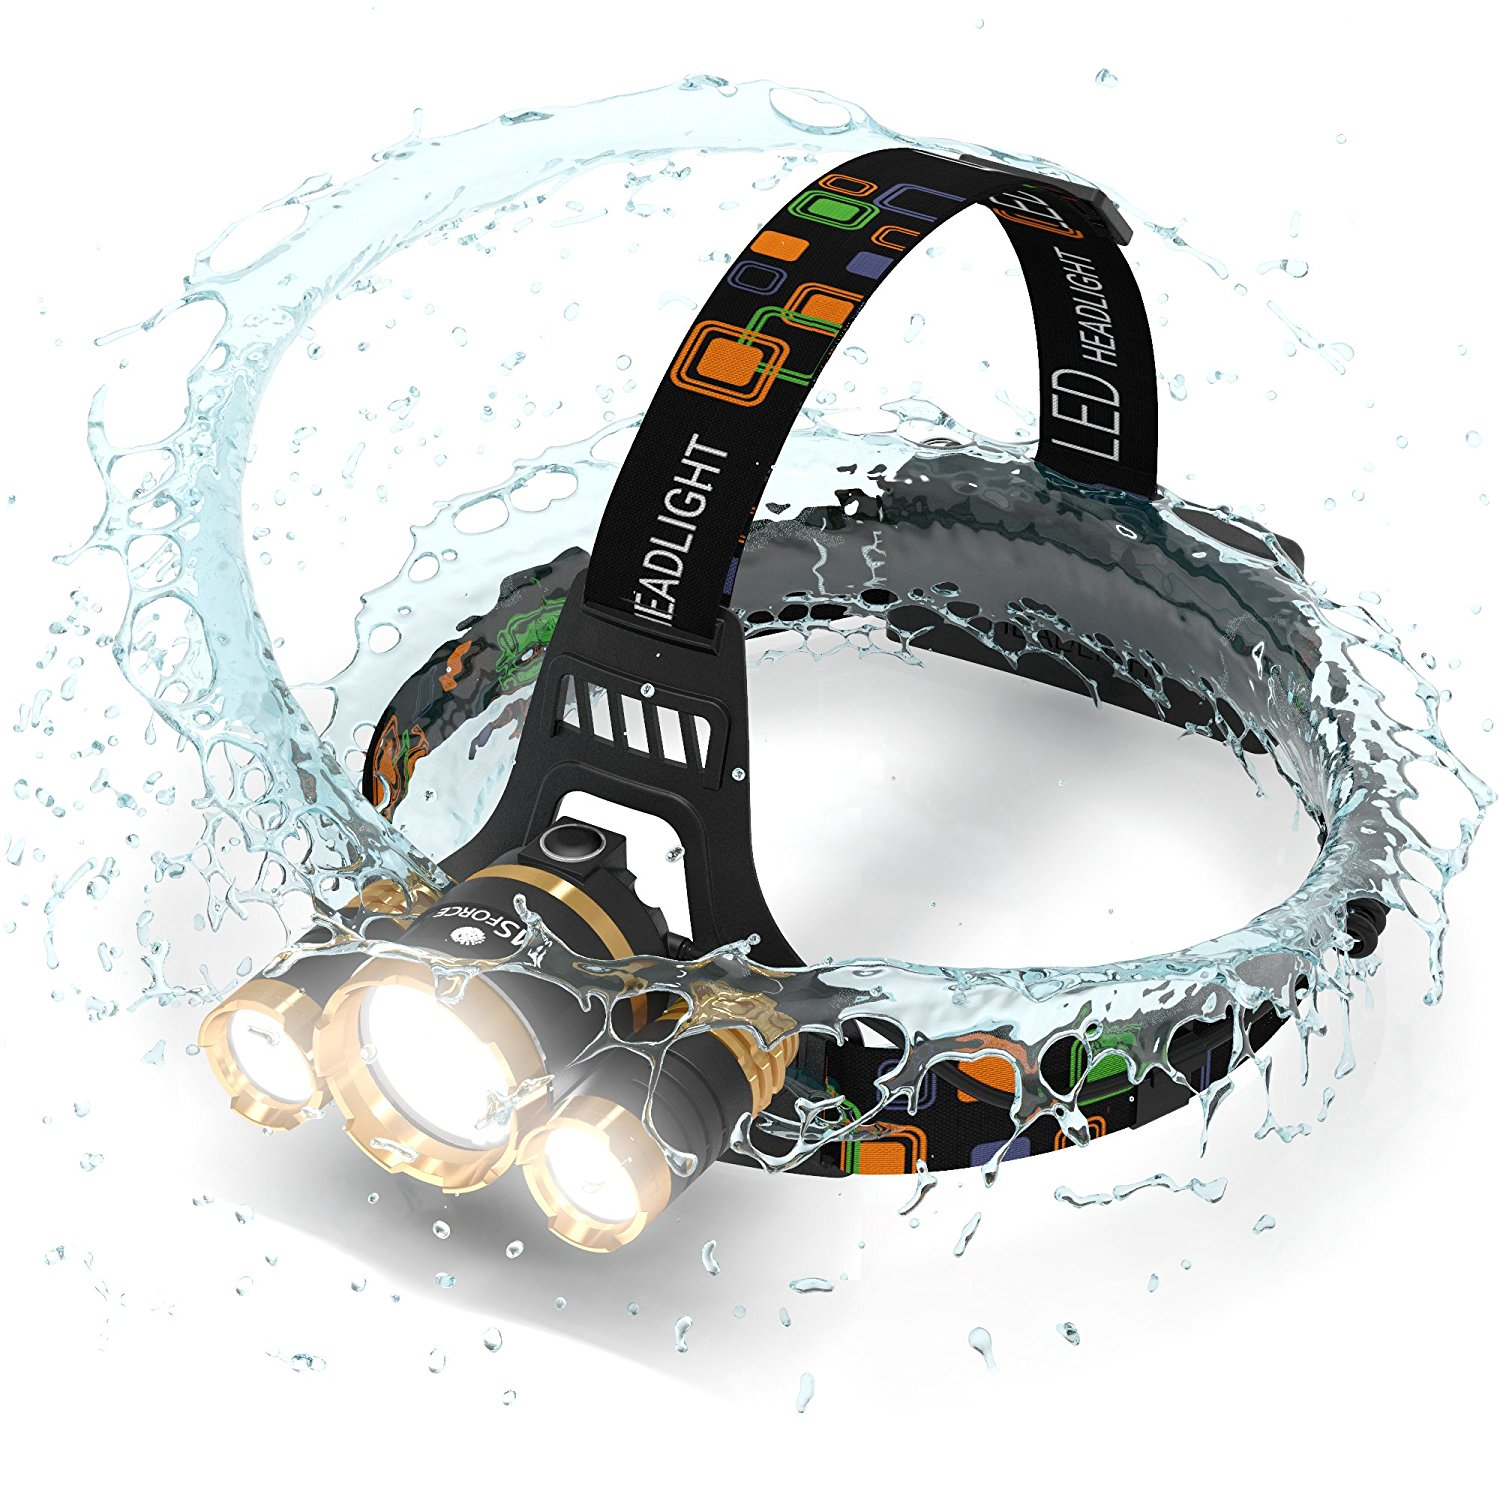 led-waterproof-headlamp Hand Tools List: The Essentials For All